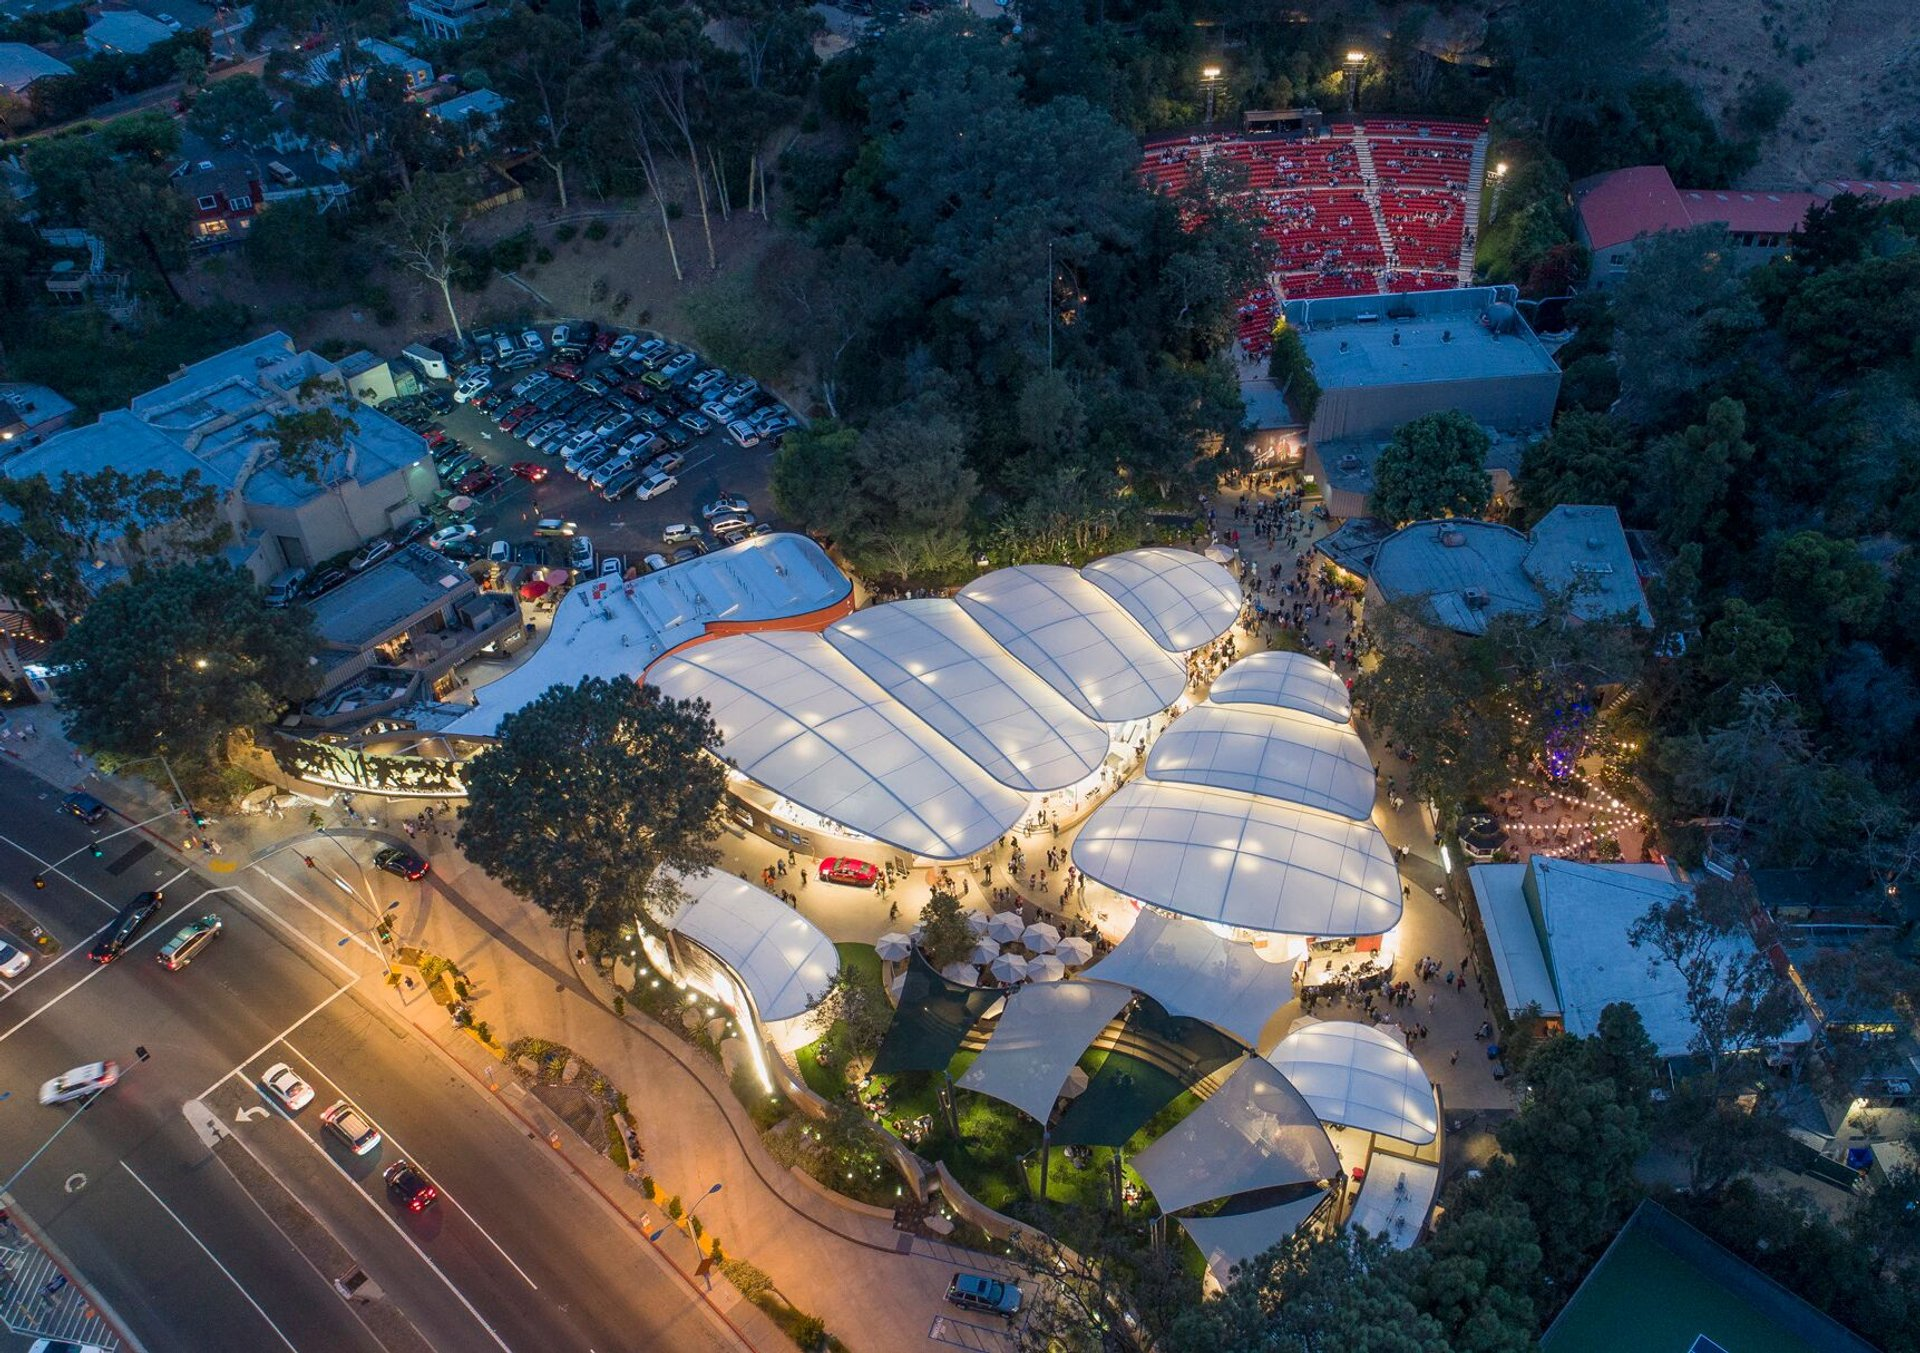 Aerial view of the festival venue